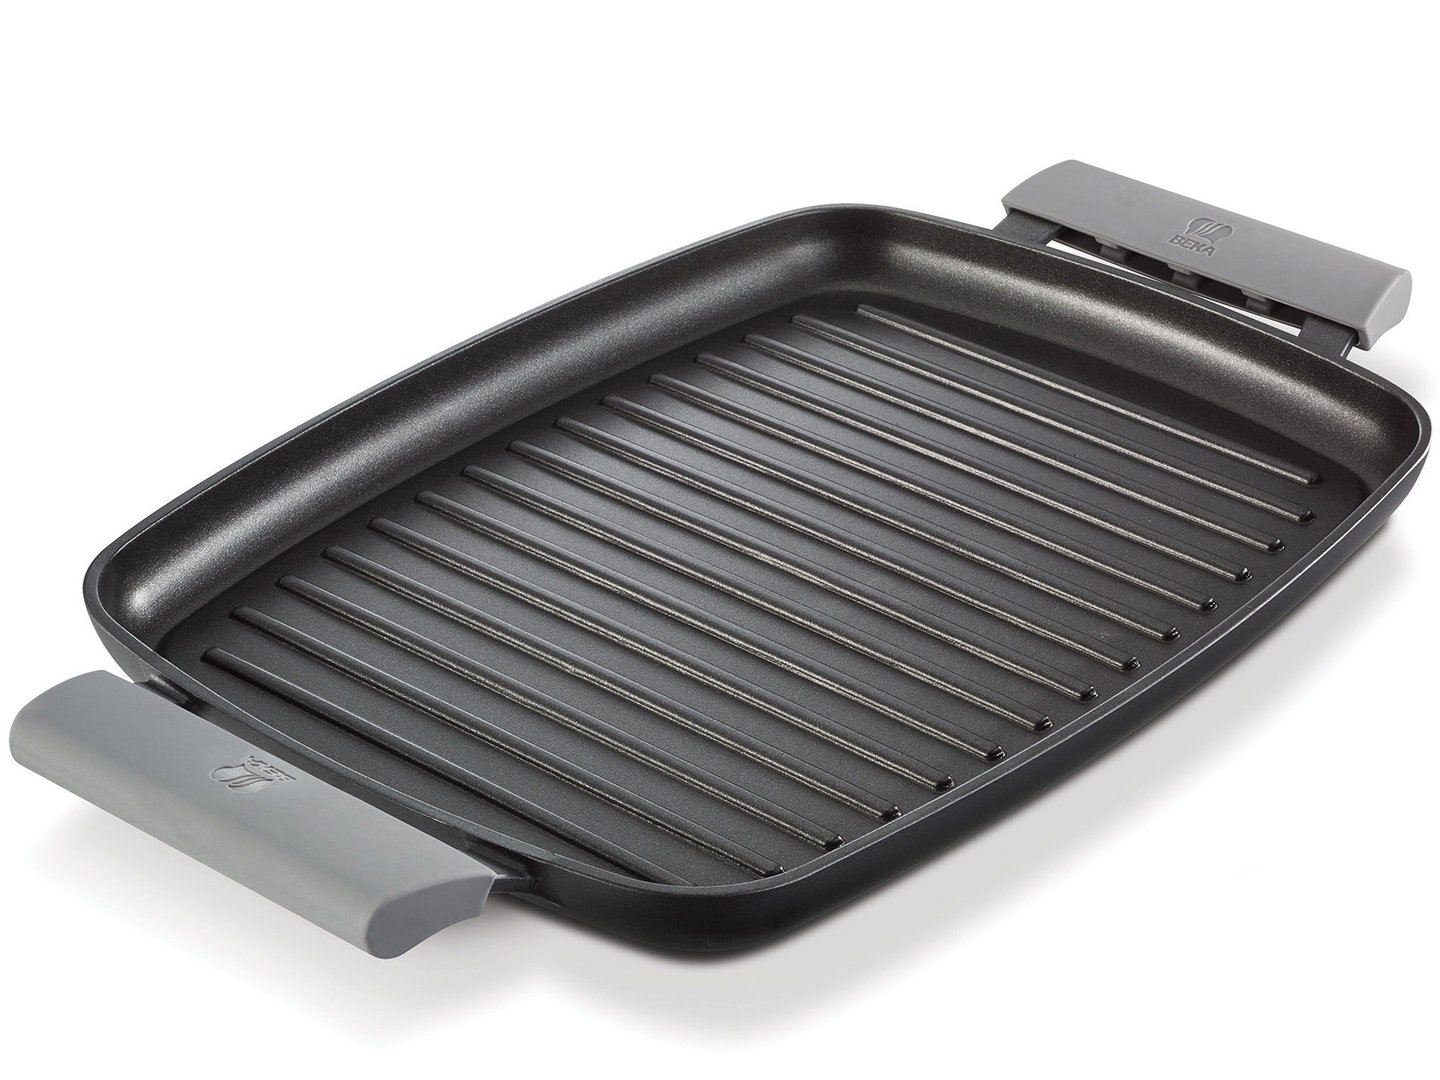 BEKA ribbed cast alu griddle 47 cm with silicone handles induction